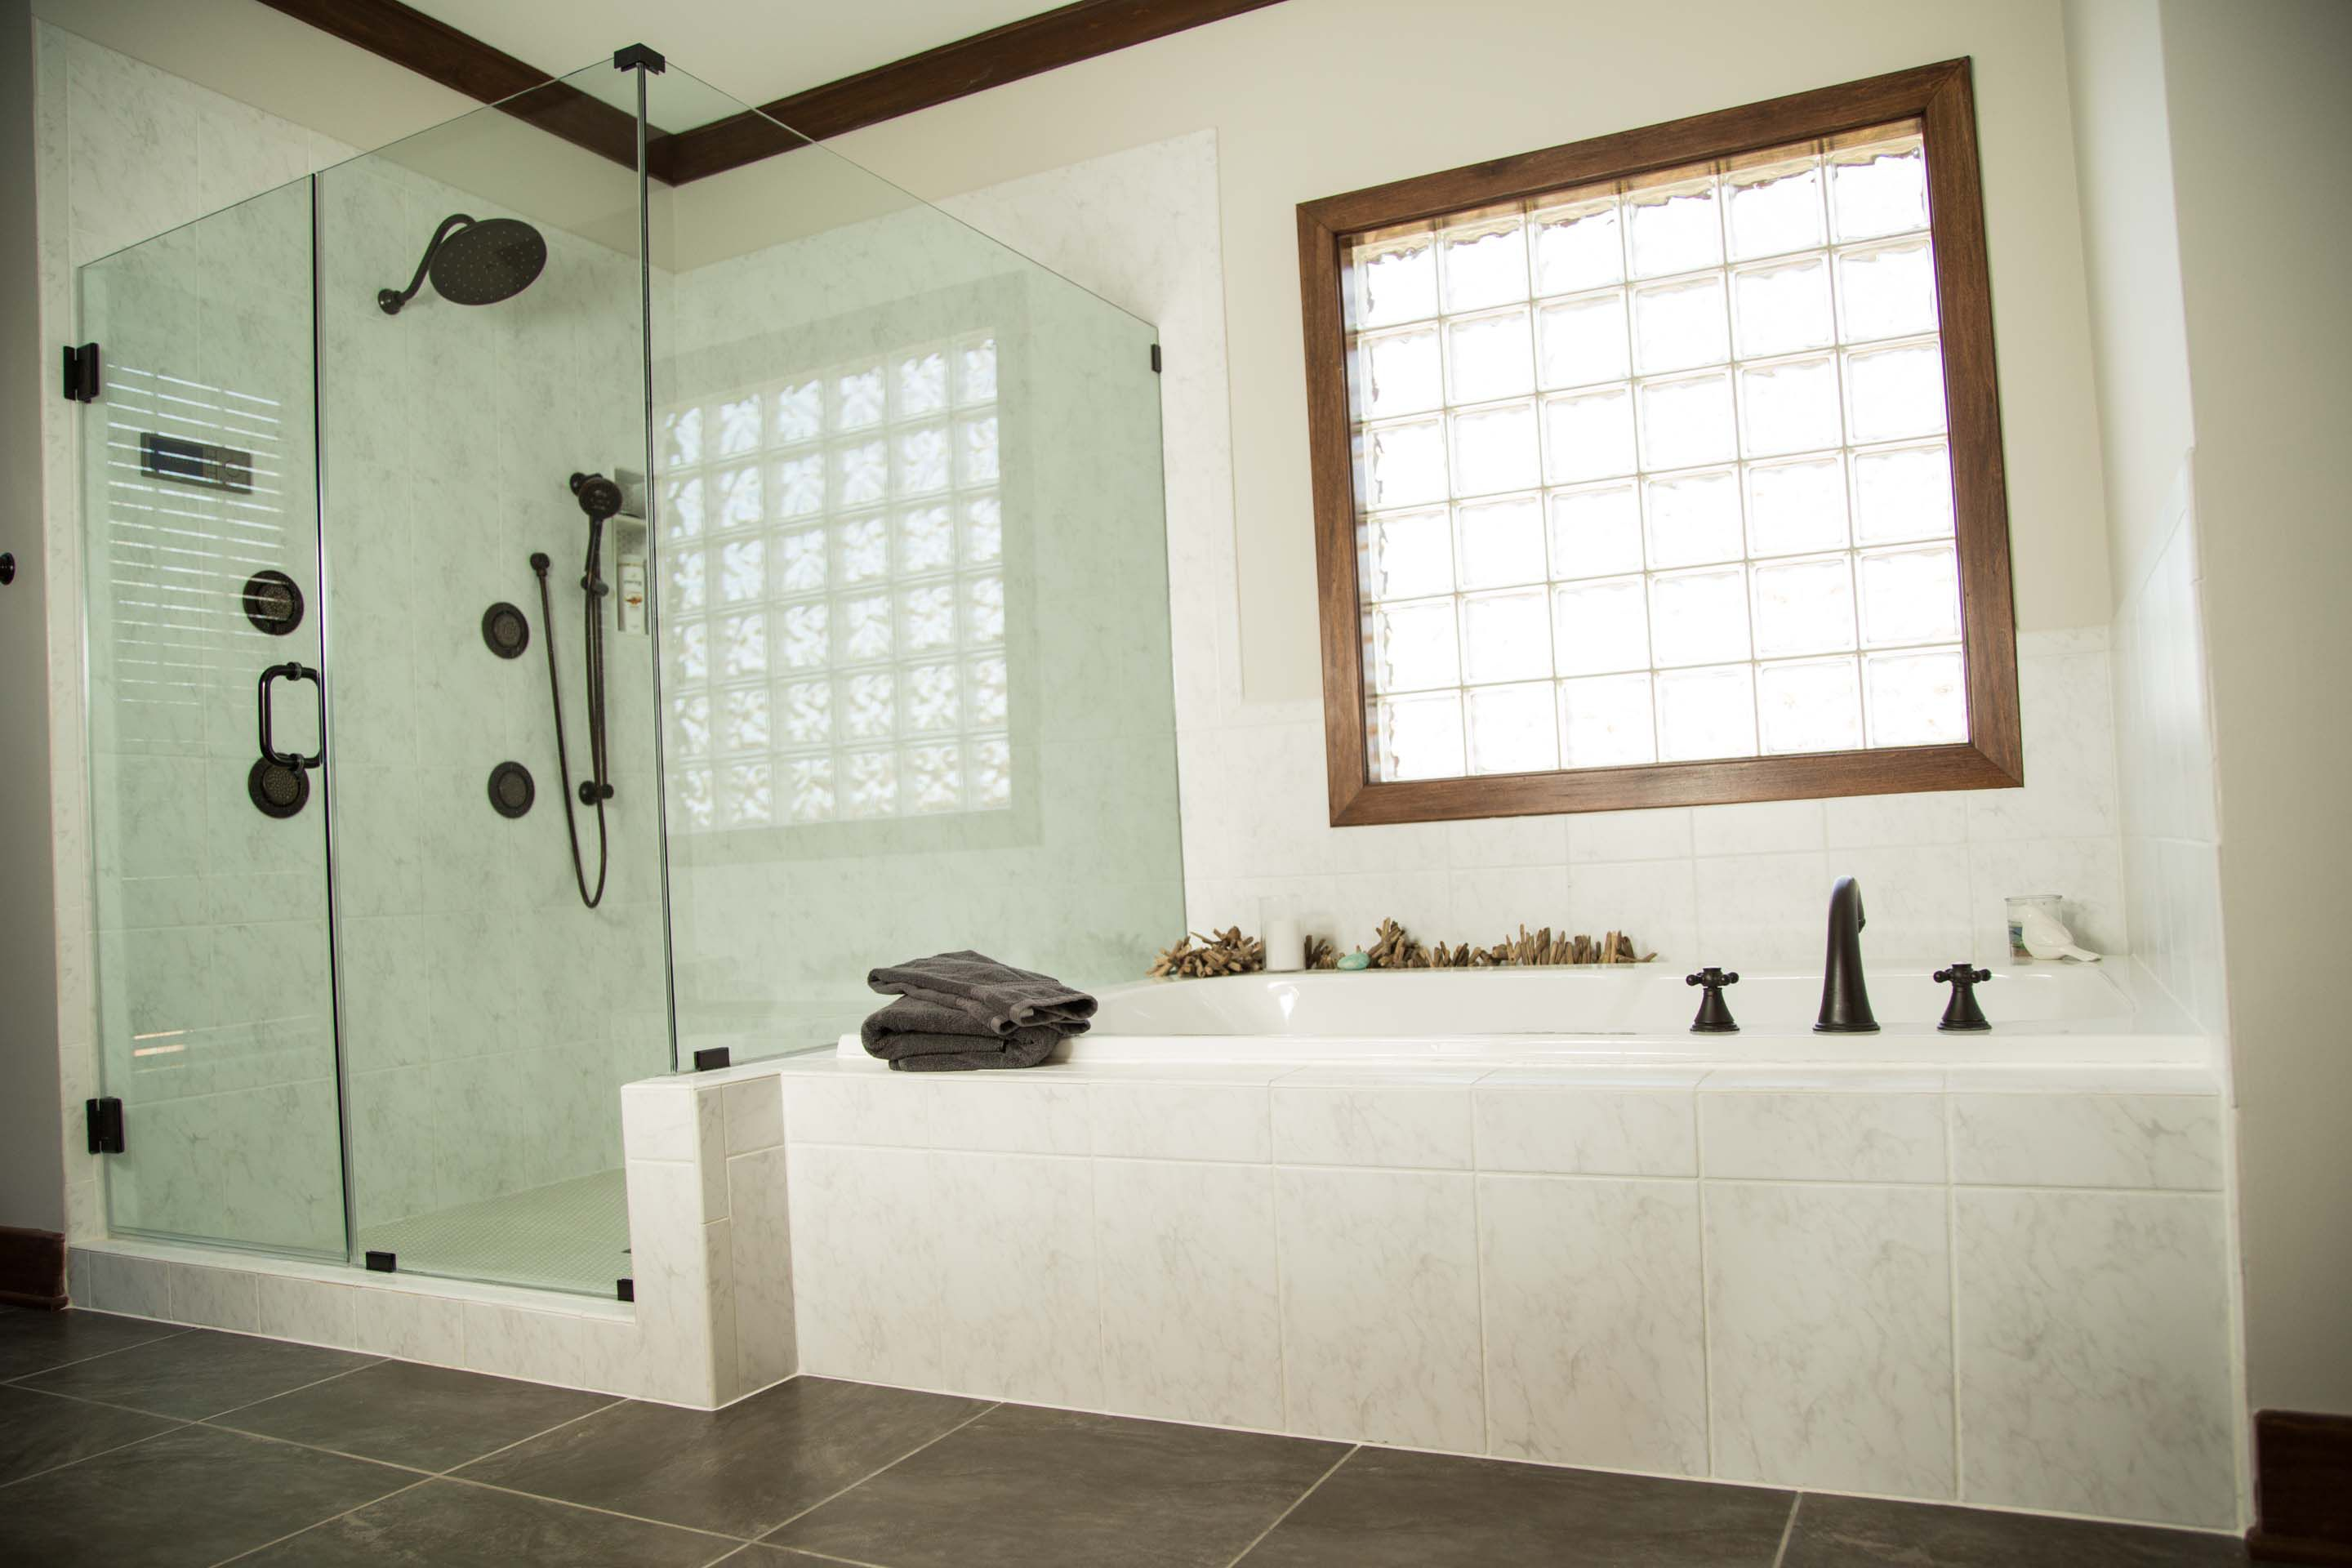 smarthousebathroomphotos-1.jpg